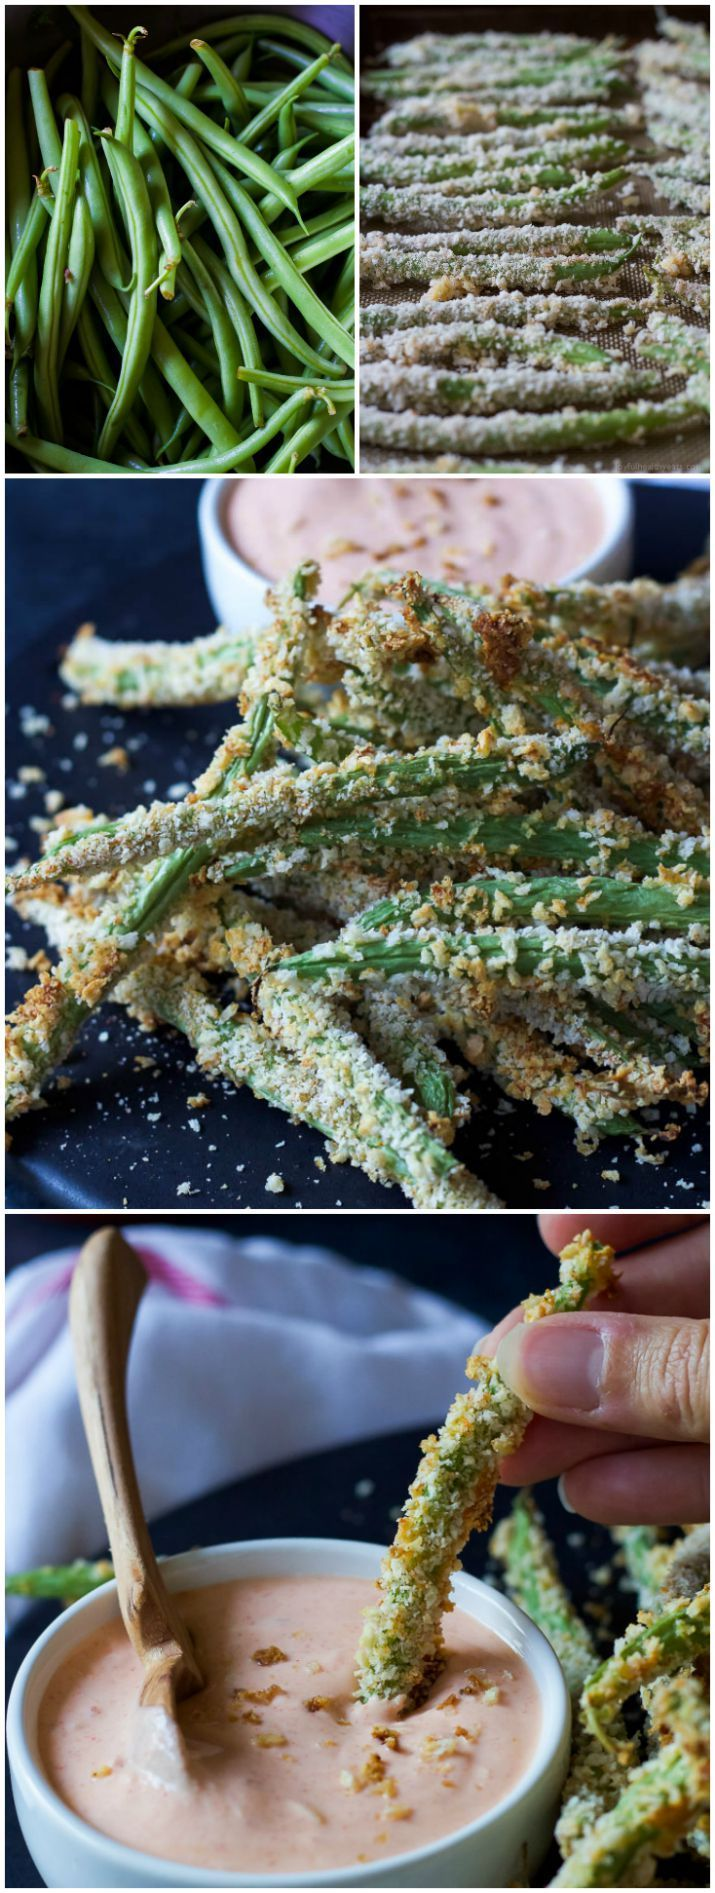 Crispy Baked Green Bean Fries with Sriracha Sauce - Takes only 15 minutes to make and are served with an incredible sauce for dipping!